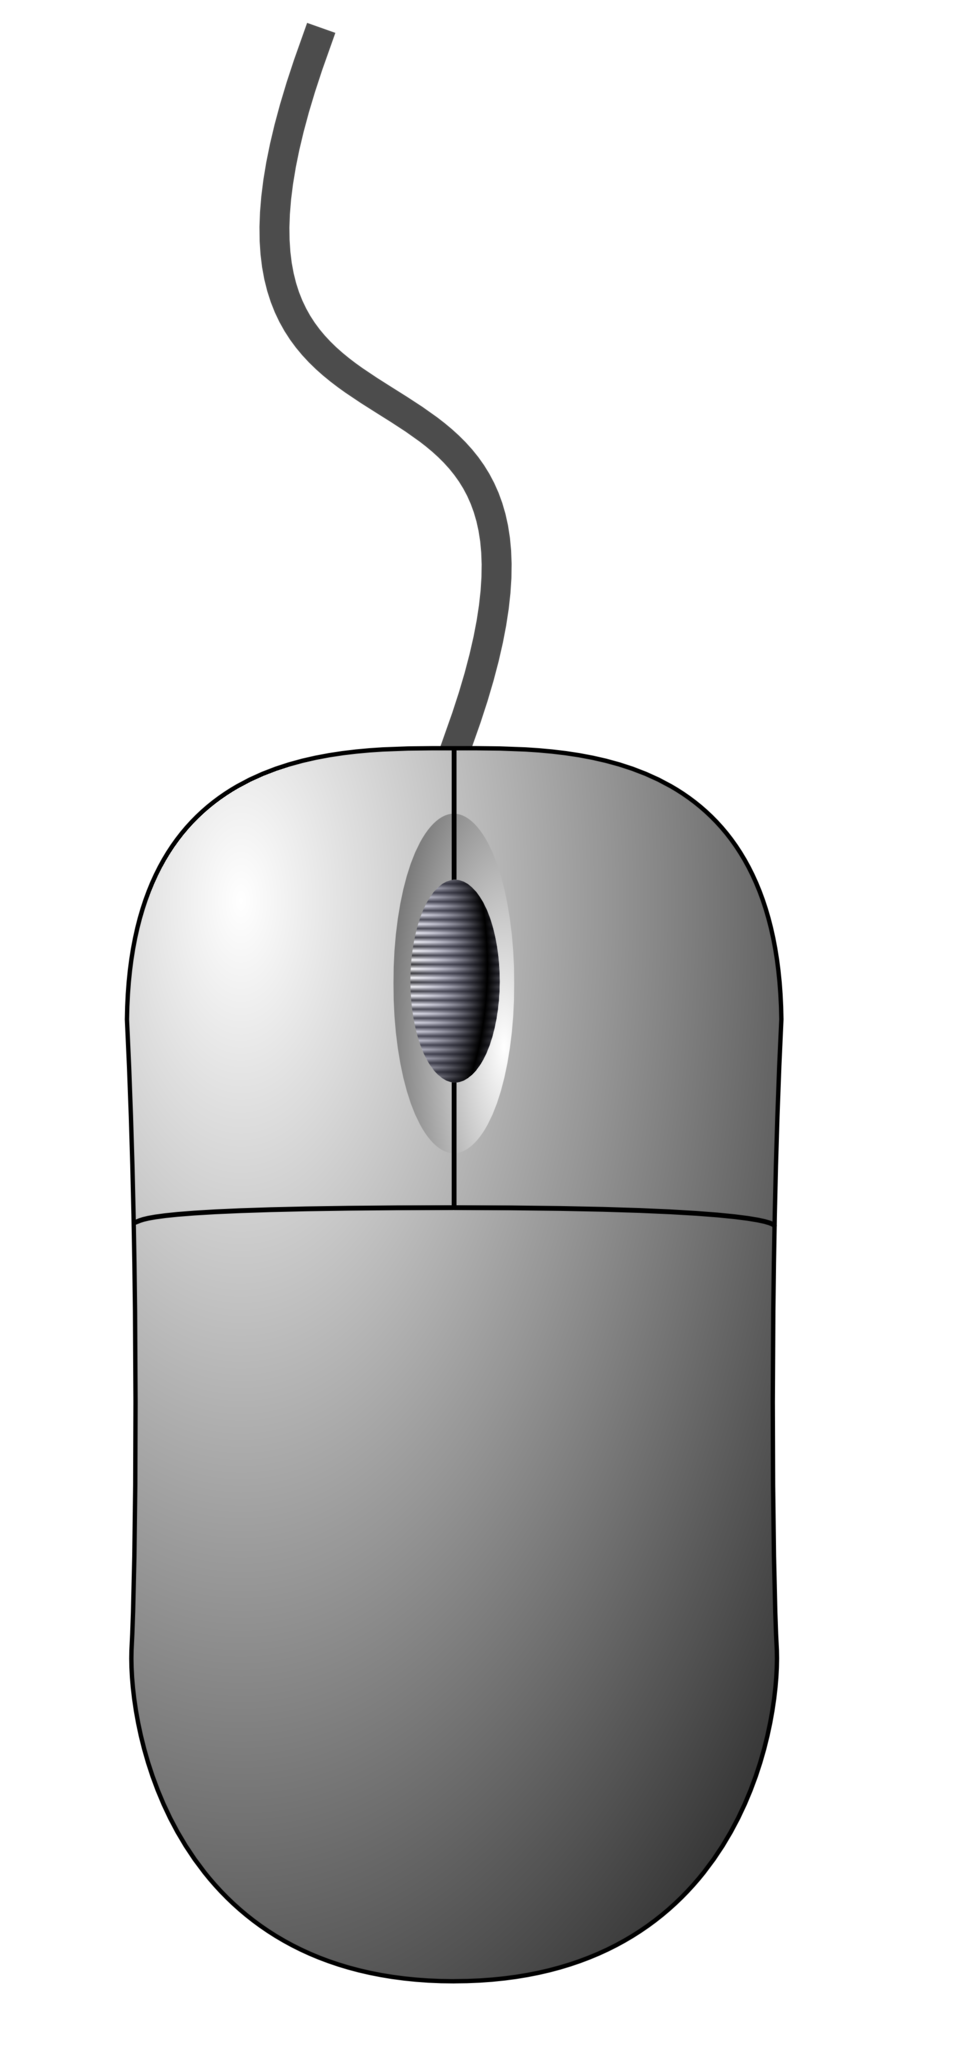 Computer mouse (top-down view)